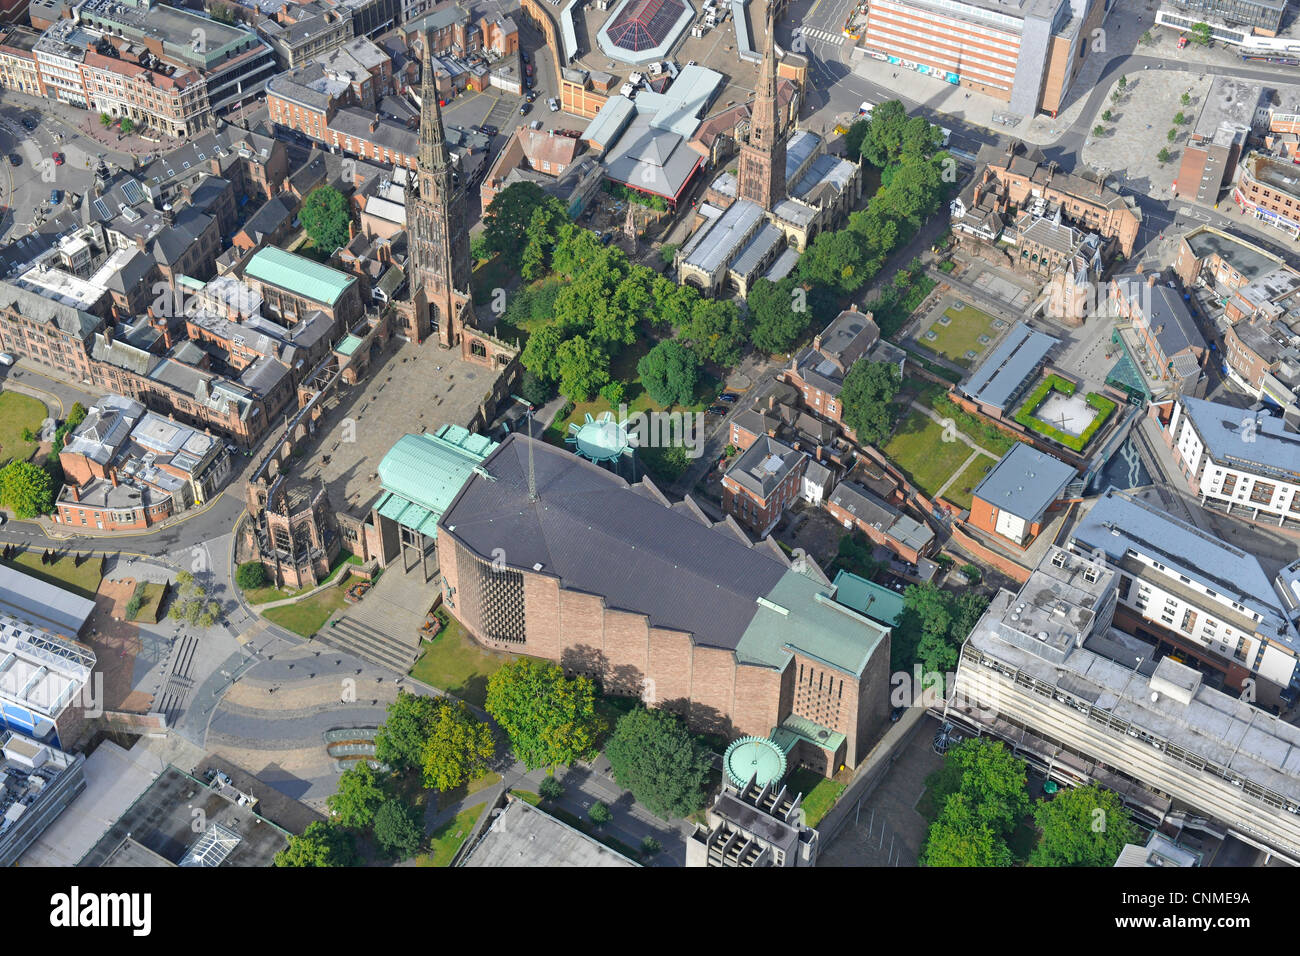 Aerial photograph showing both the ruined Coventry Cathedral and the New. - Stock Image